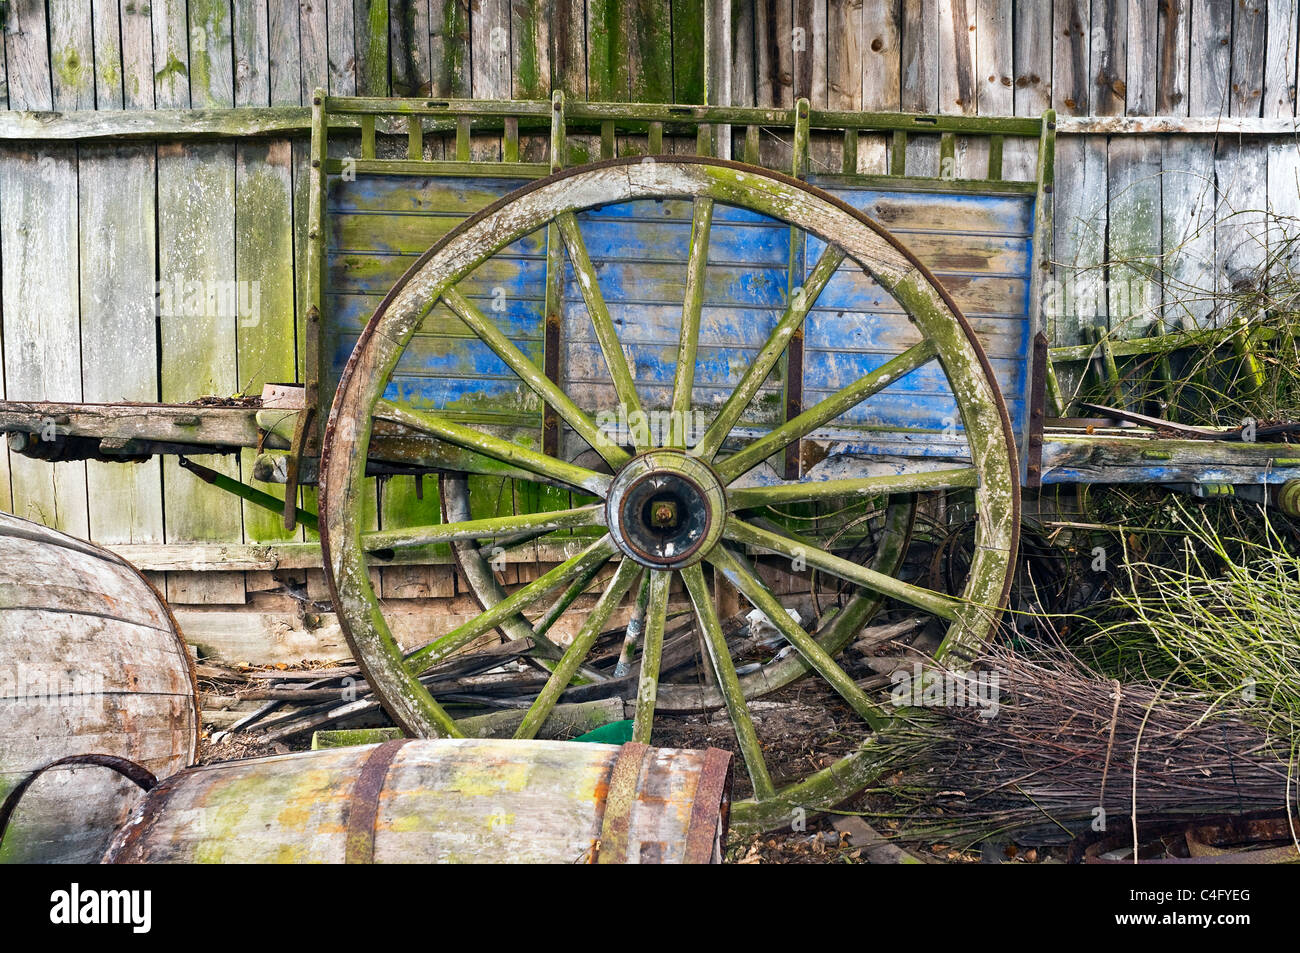 Old disused farm-cart in barn - Indre-et-Loire, France. - Stock Image